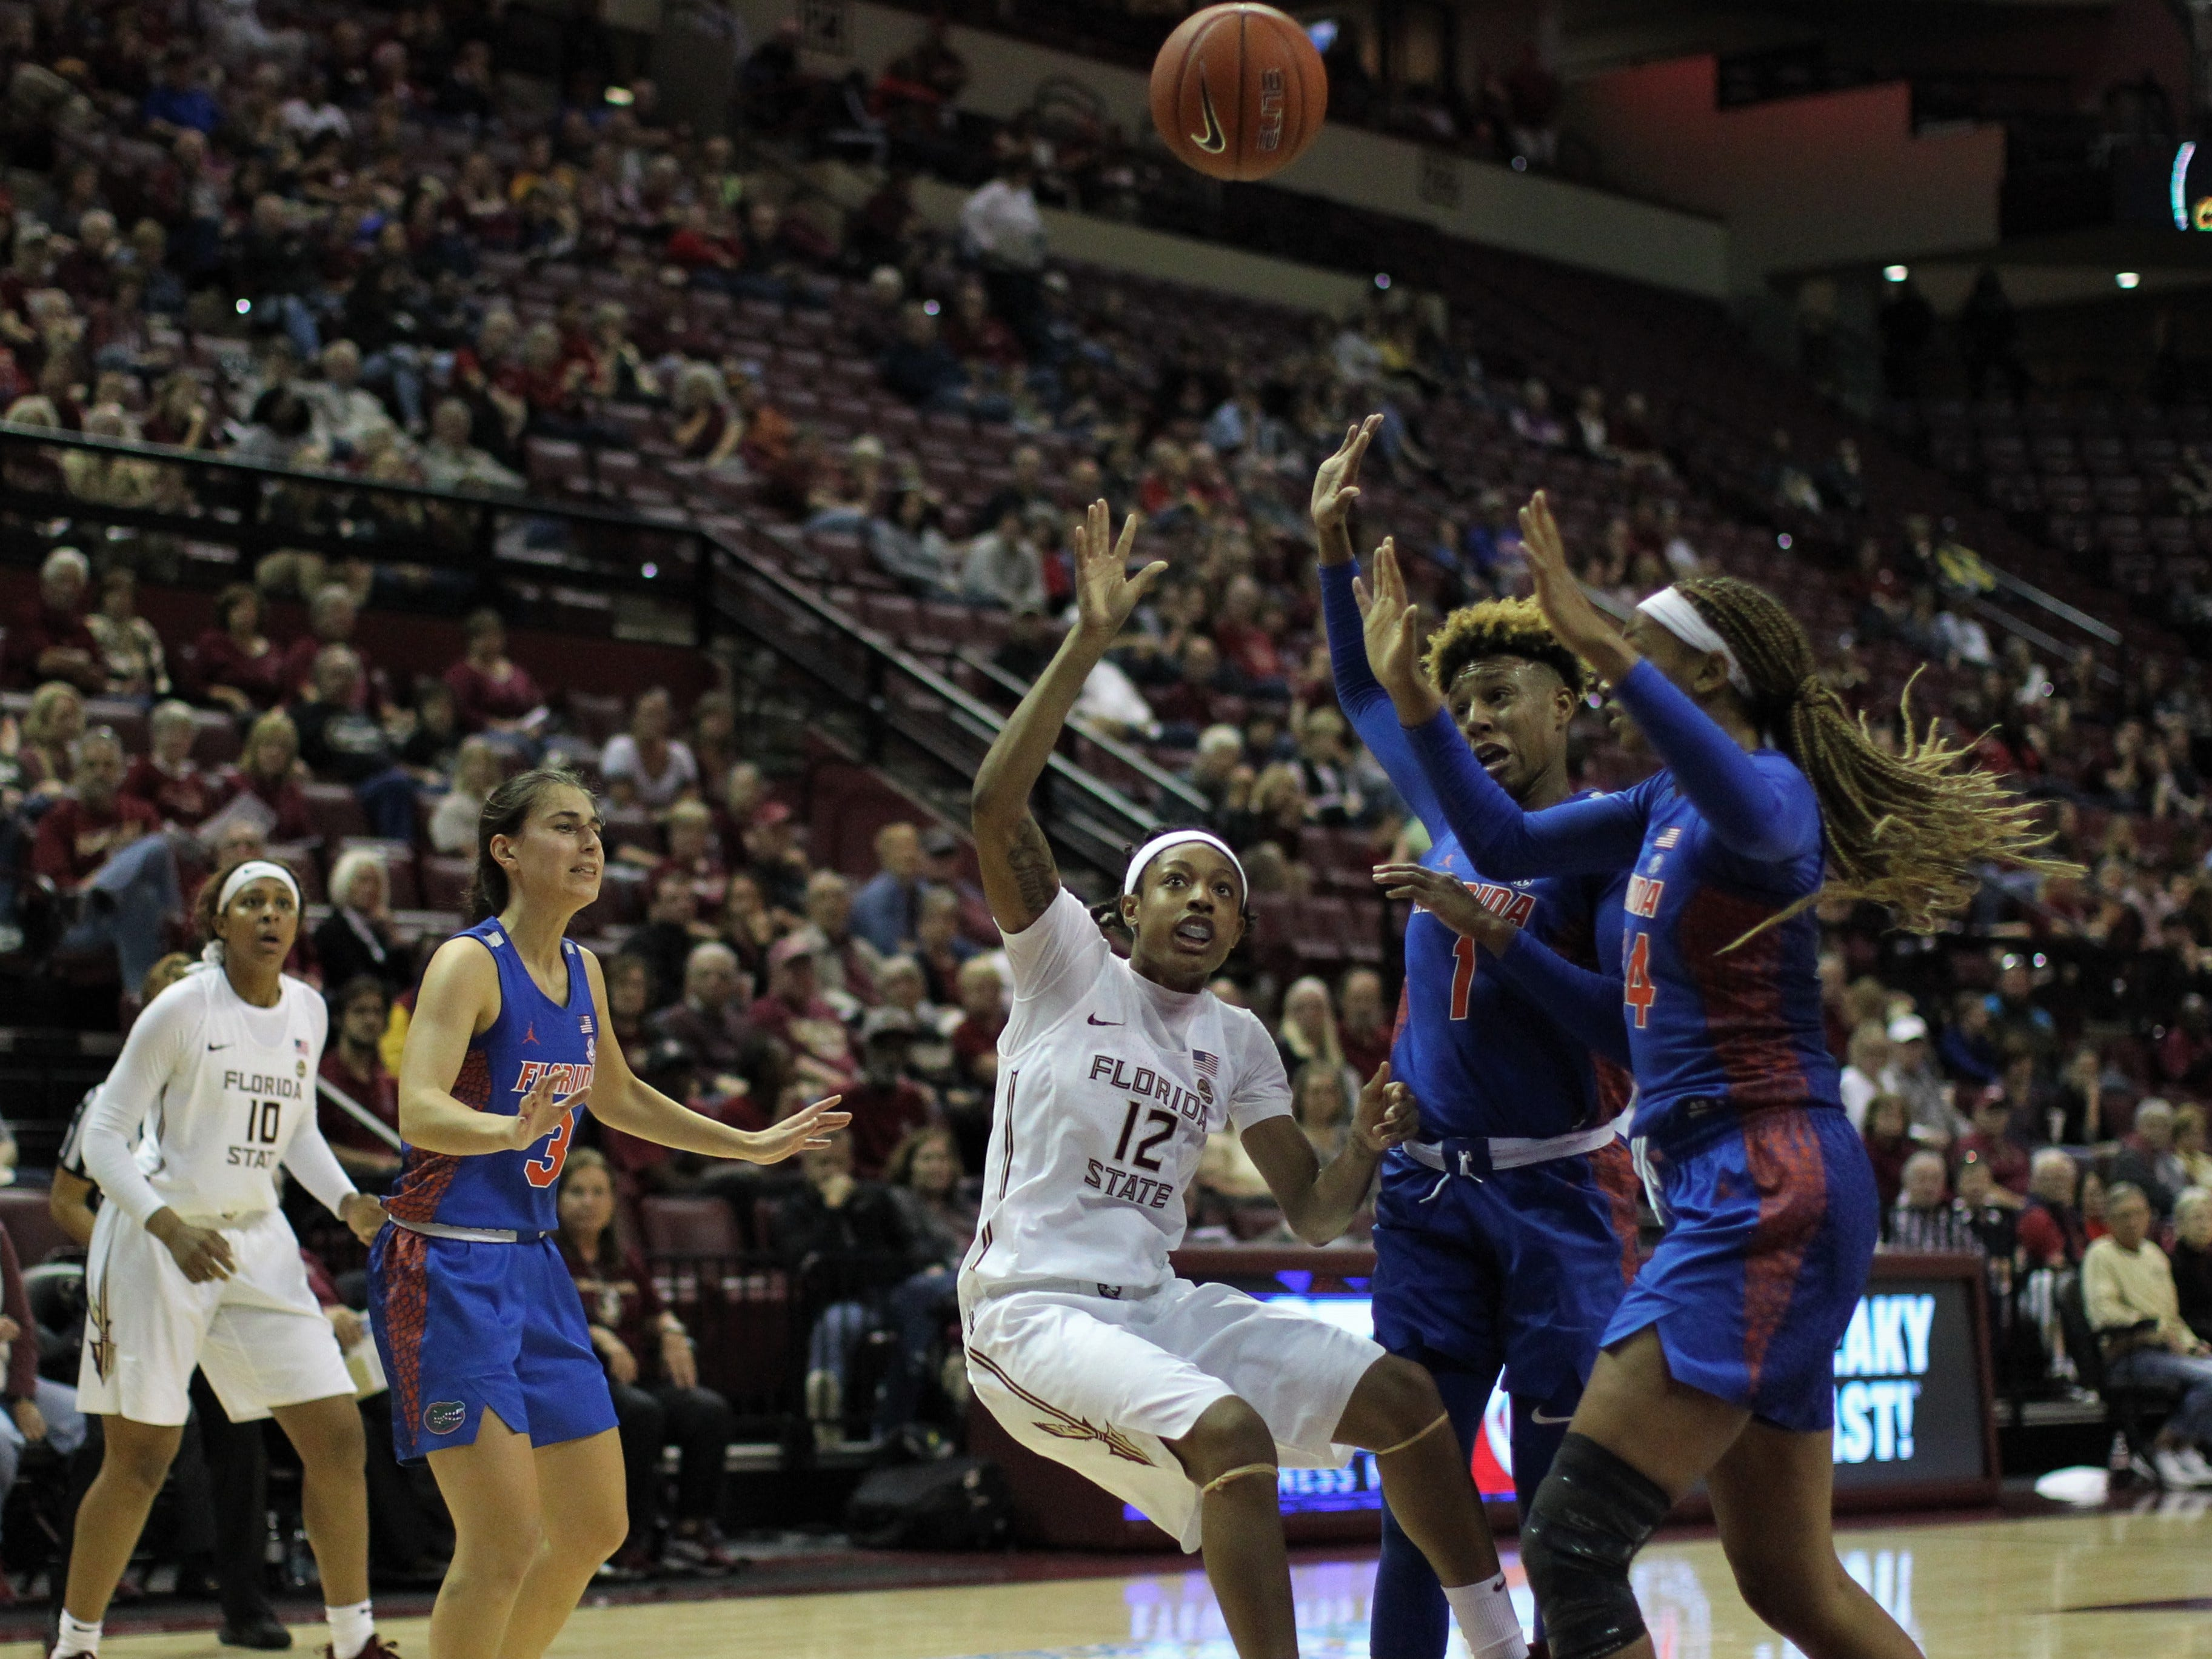 Florida State's Nicki Ekhomu throws up an off-balance shot because of contact during the second half of the Seminoles' game against Florida at the Tucker Civic Center on Nov. 11, 2018.